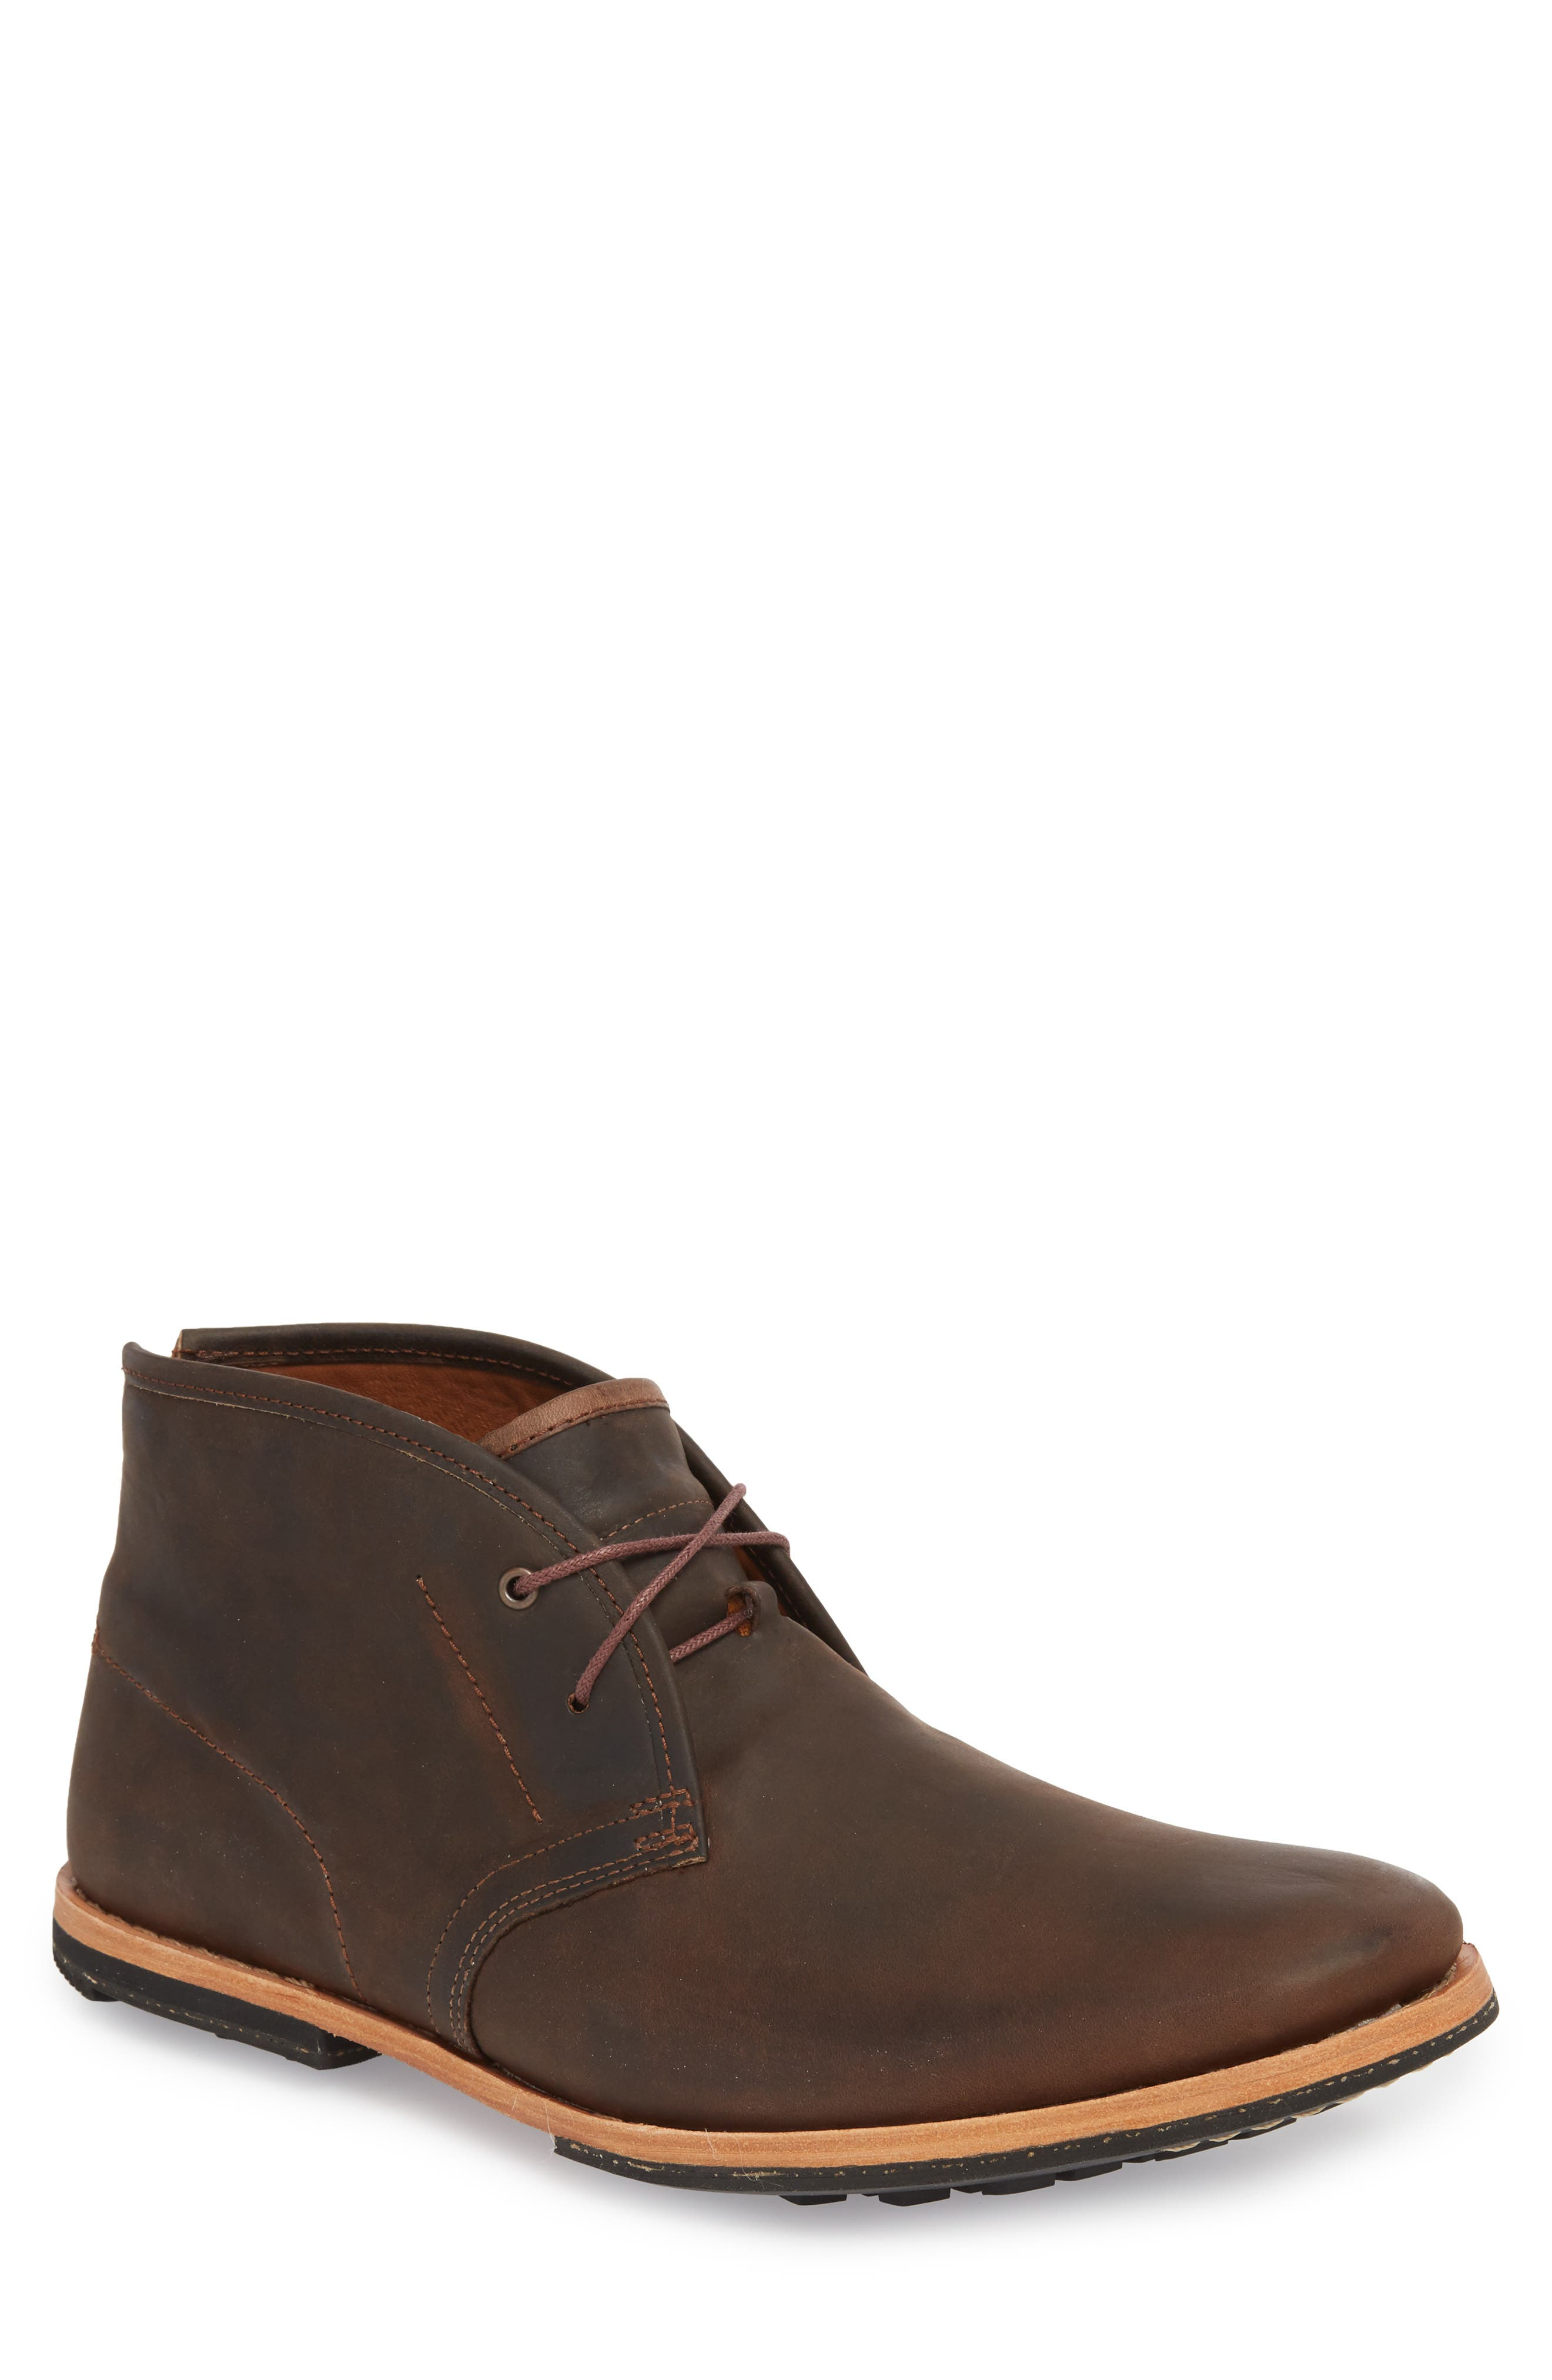 Wodehouse Lost History Chukka Boot,                         Main,                         color, BROWN LEATHER